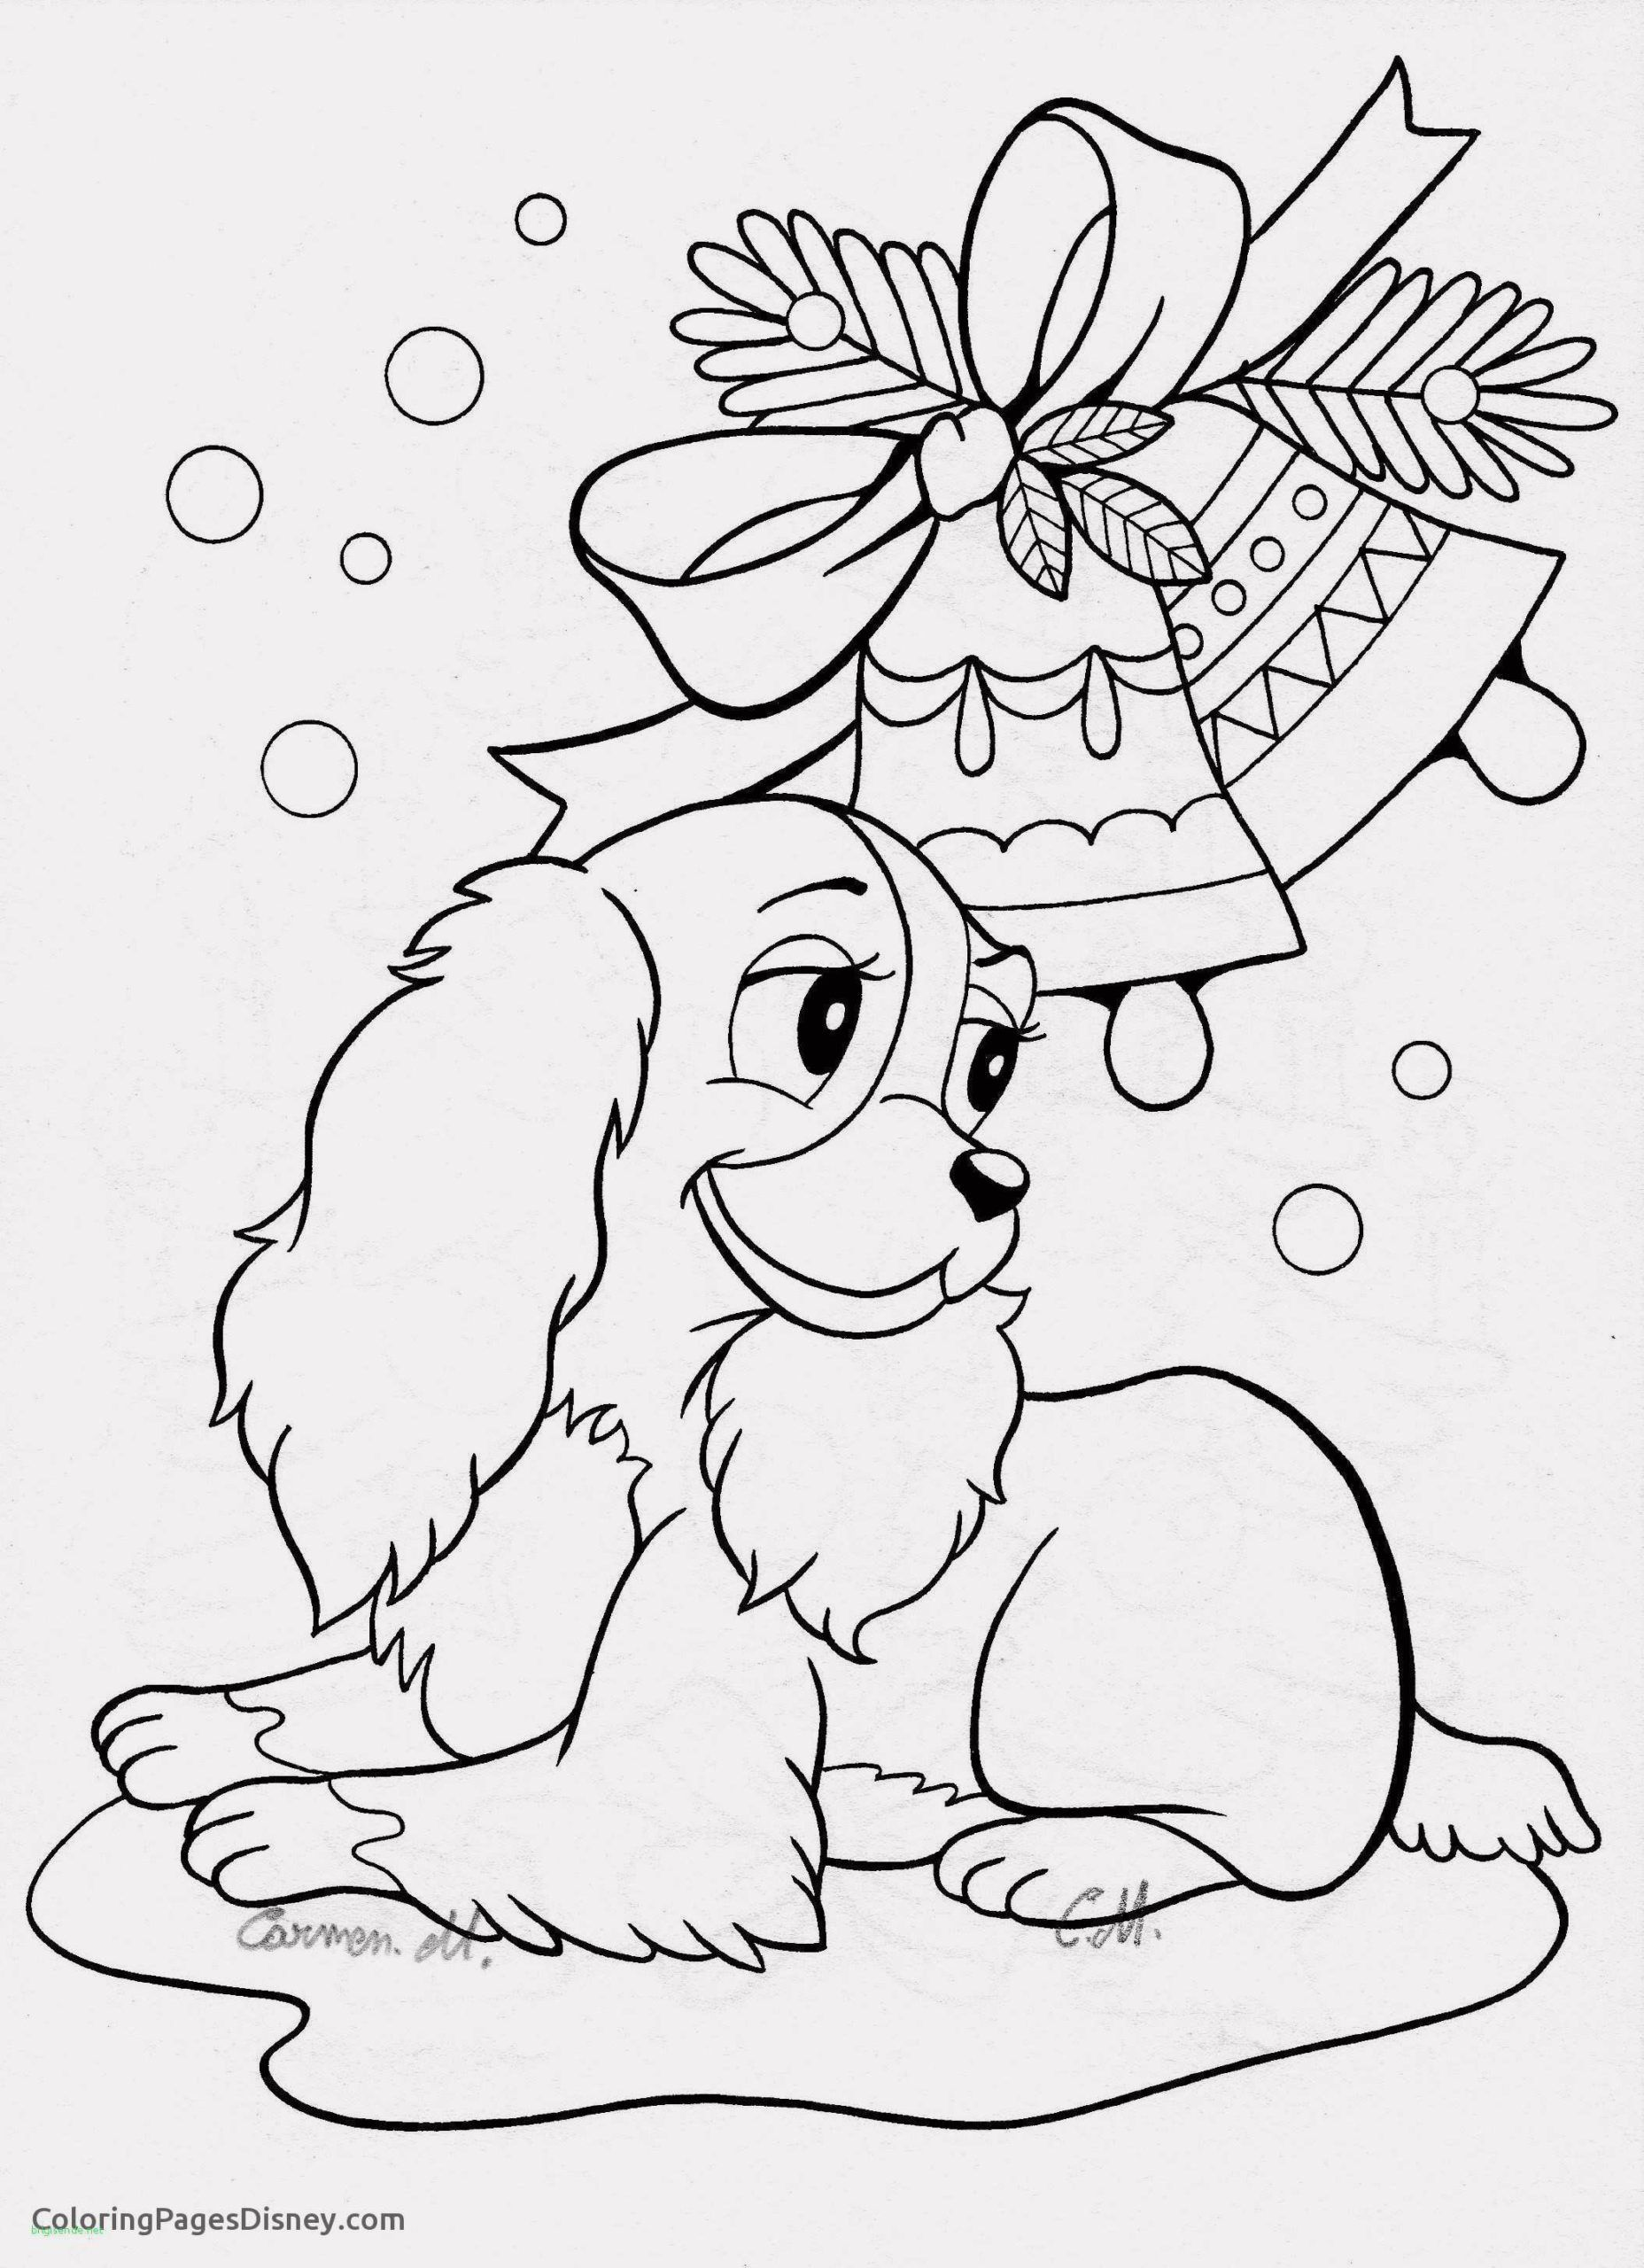 19 Hello Kitty Mermaid Coloring Pages Free Print In 2020 Printable Christmas Coloring Pages Mermaid Coloring Pages Disney Coloring Pages